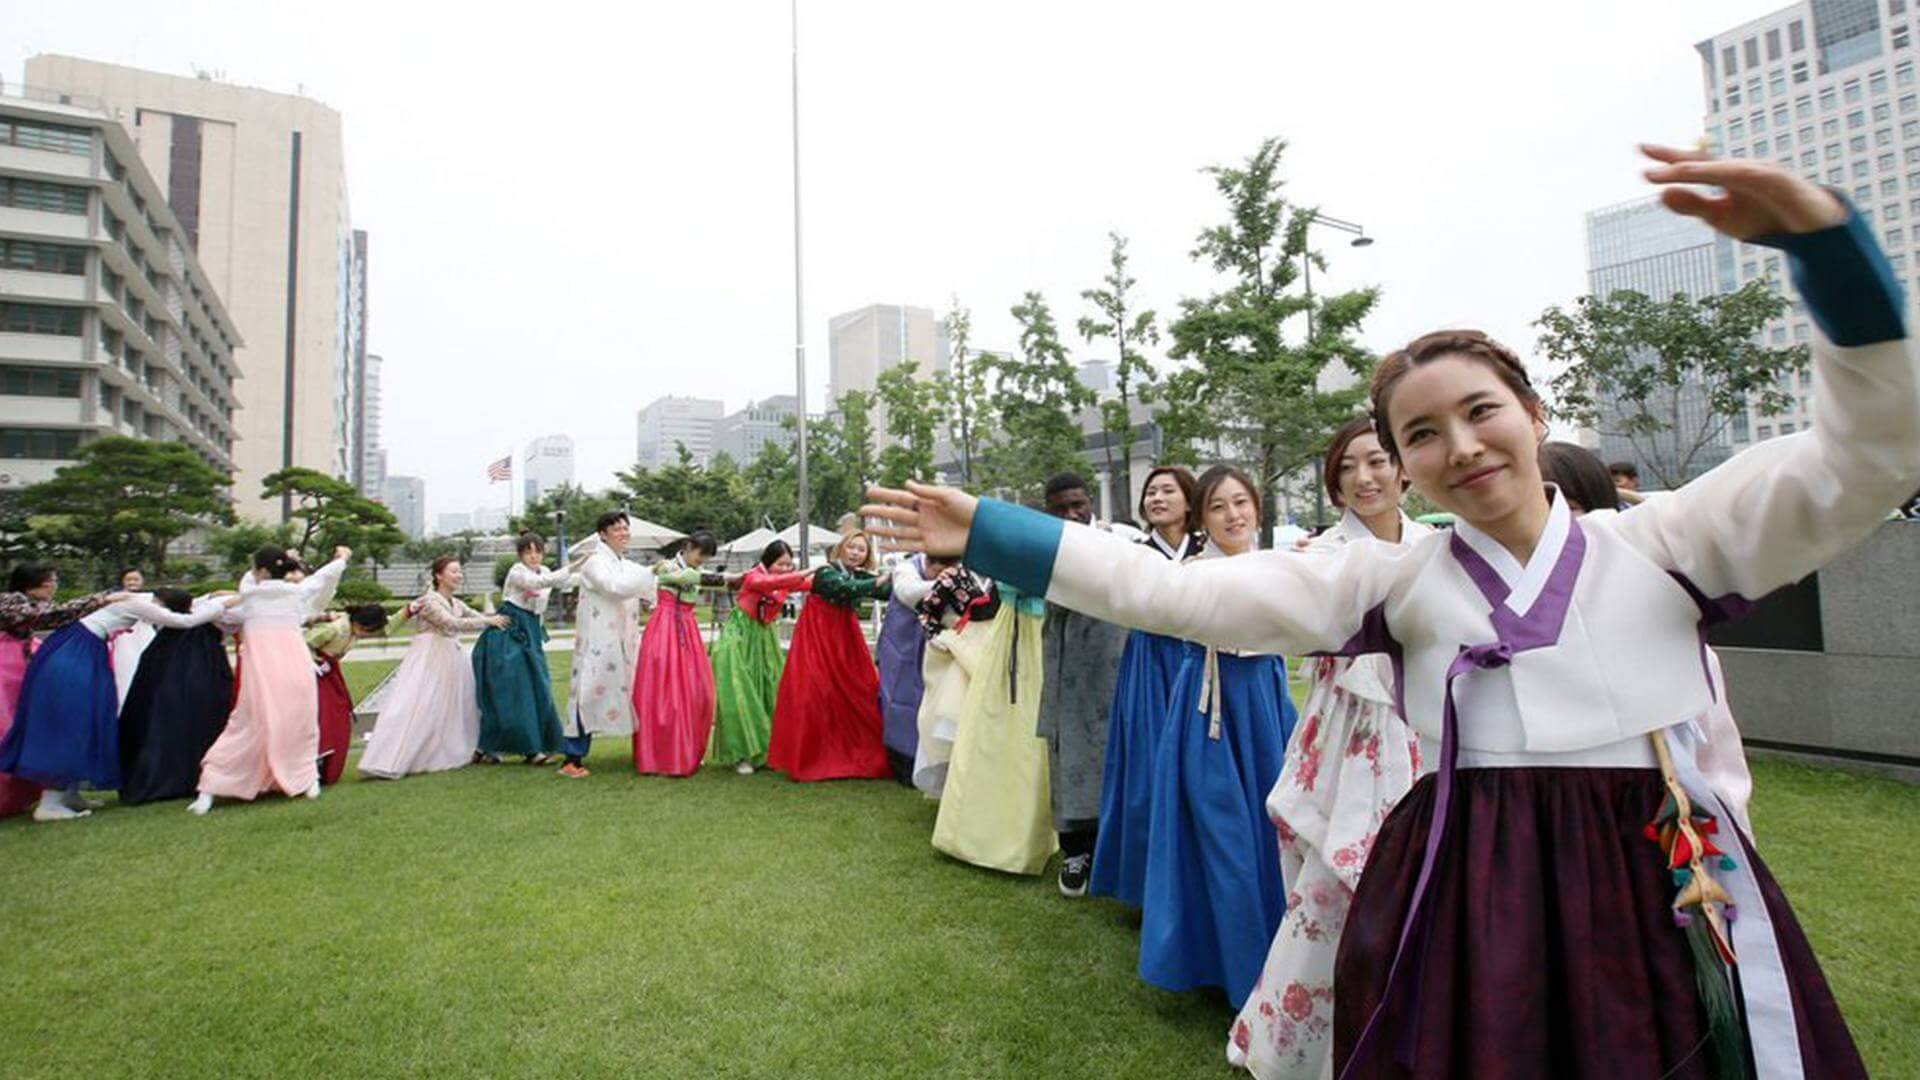 Korean girls are standing in line smiling and dancing in Seoul.